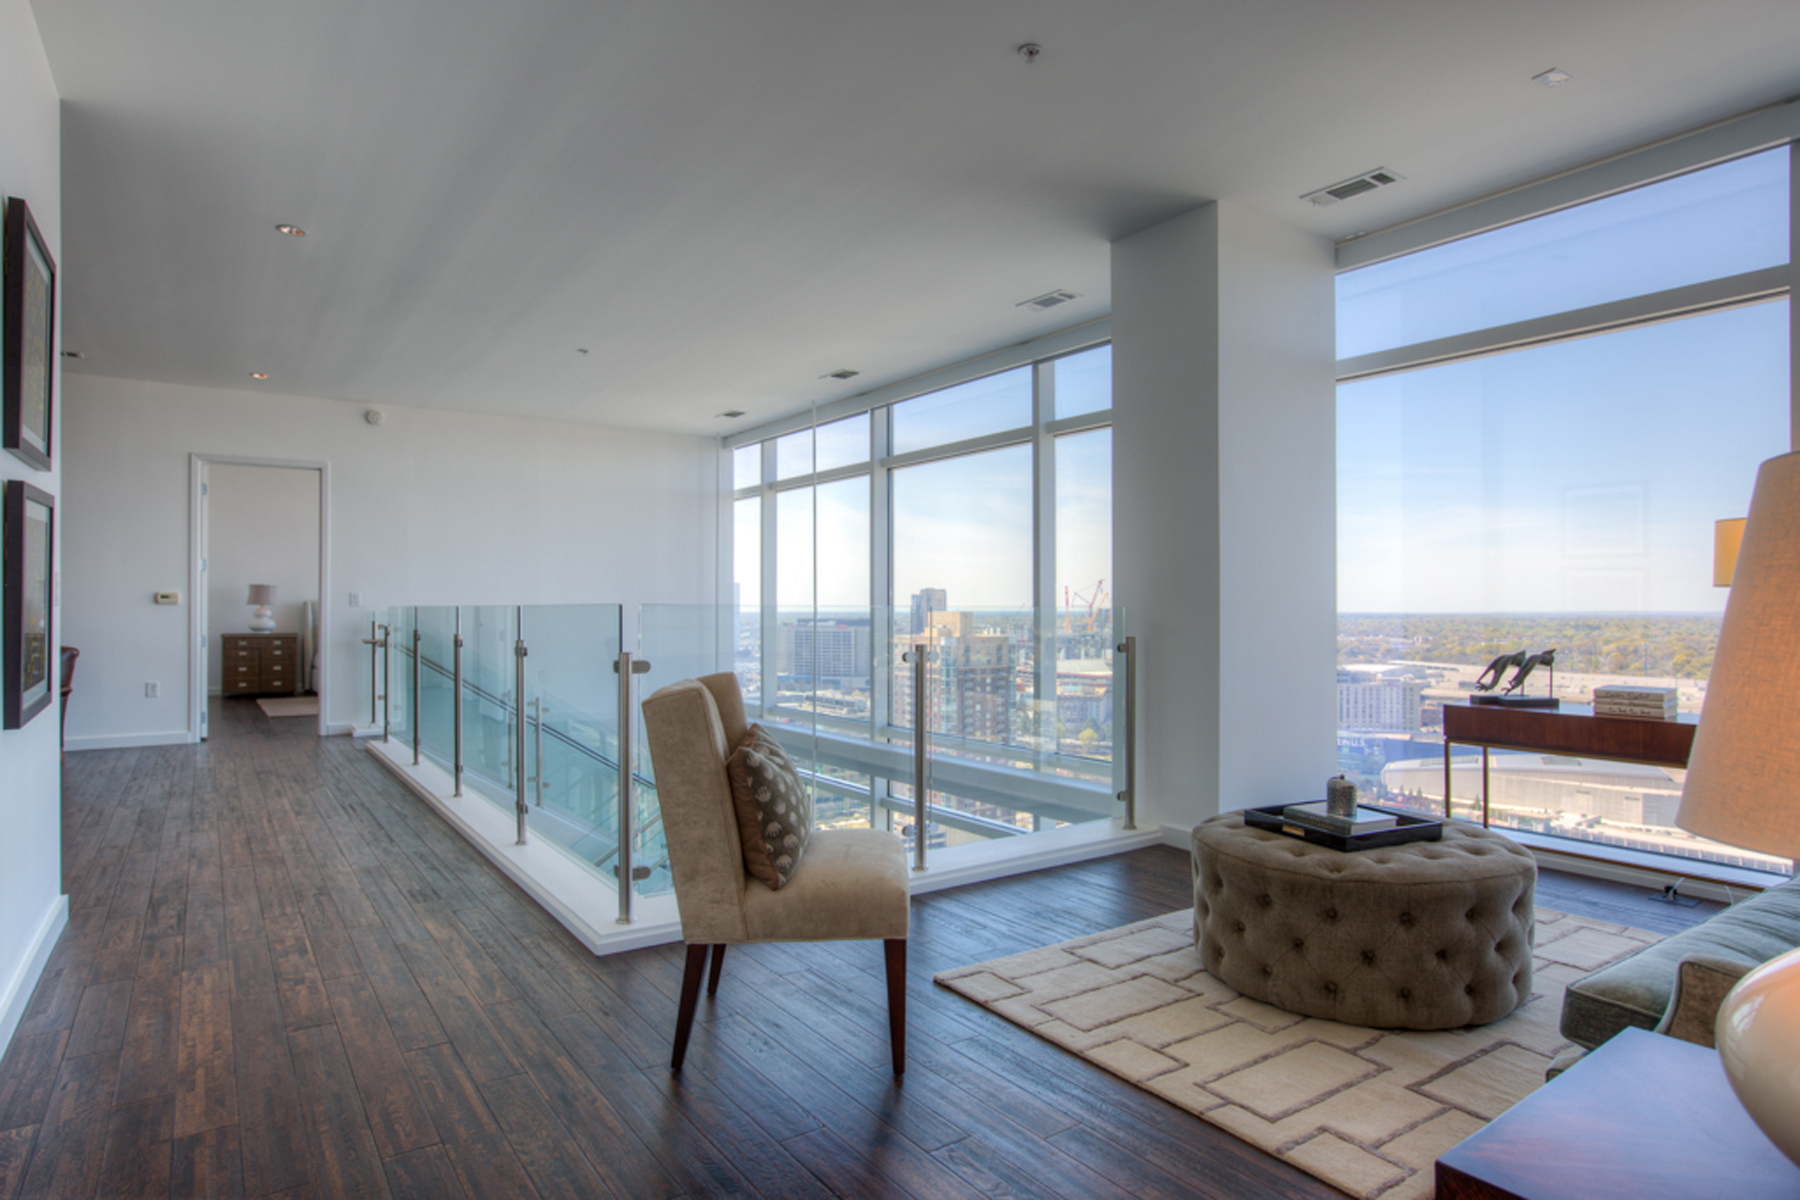 Additional photo for property listing at Spectacular Two Level Atlanta Penthouse With Luxury Hotel Amenities 45 Ivan Allen Jr Boulevard PH#2703 Atlanta, ジョージア 30308 アメリカ合衆国